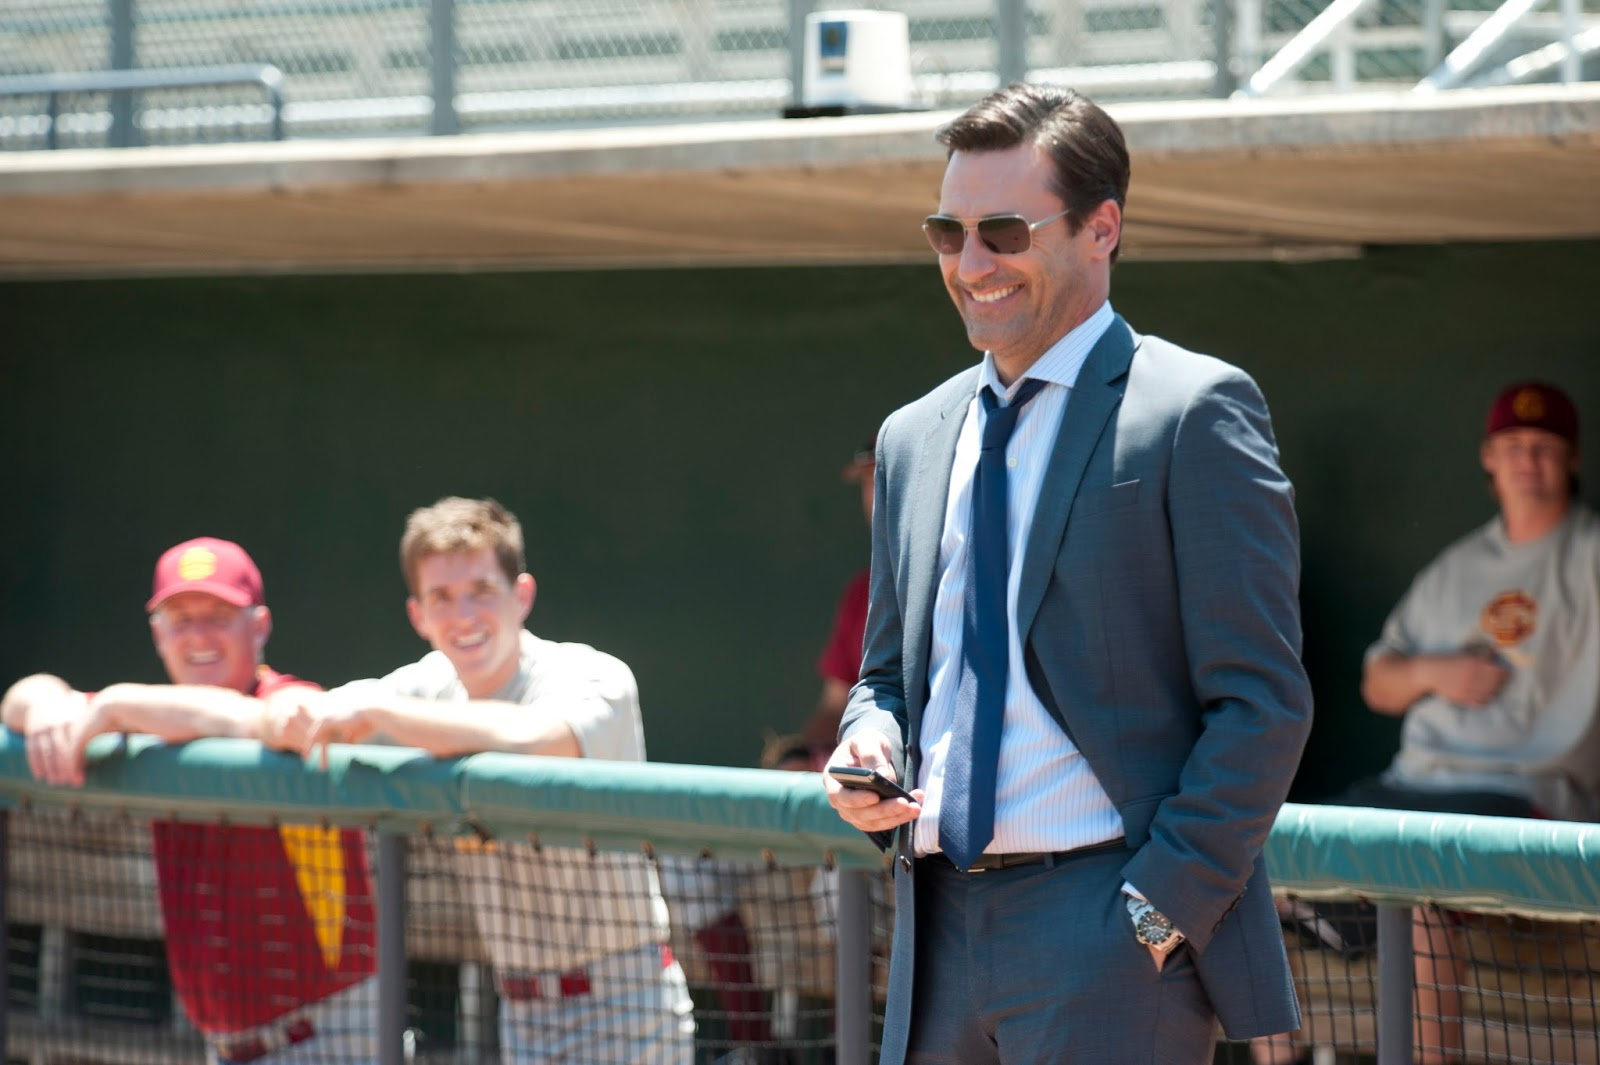 Disney's Million Dollar Arm Pitching Contest Offers a Chance to Win $1 Million Dollars!!